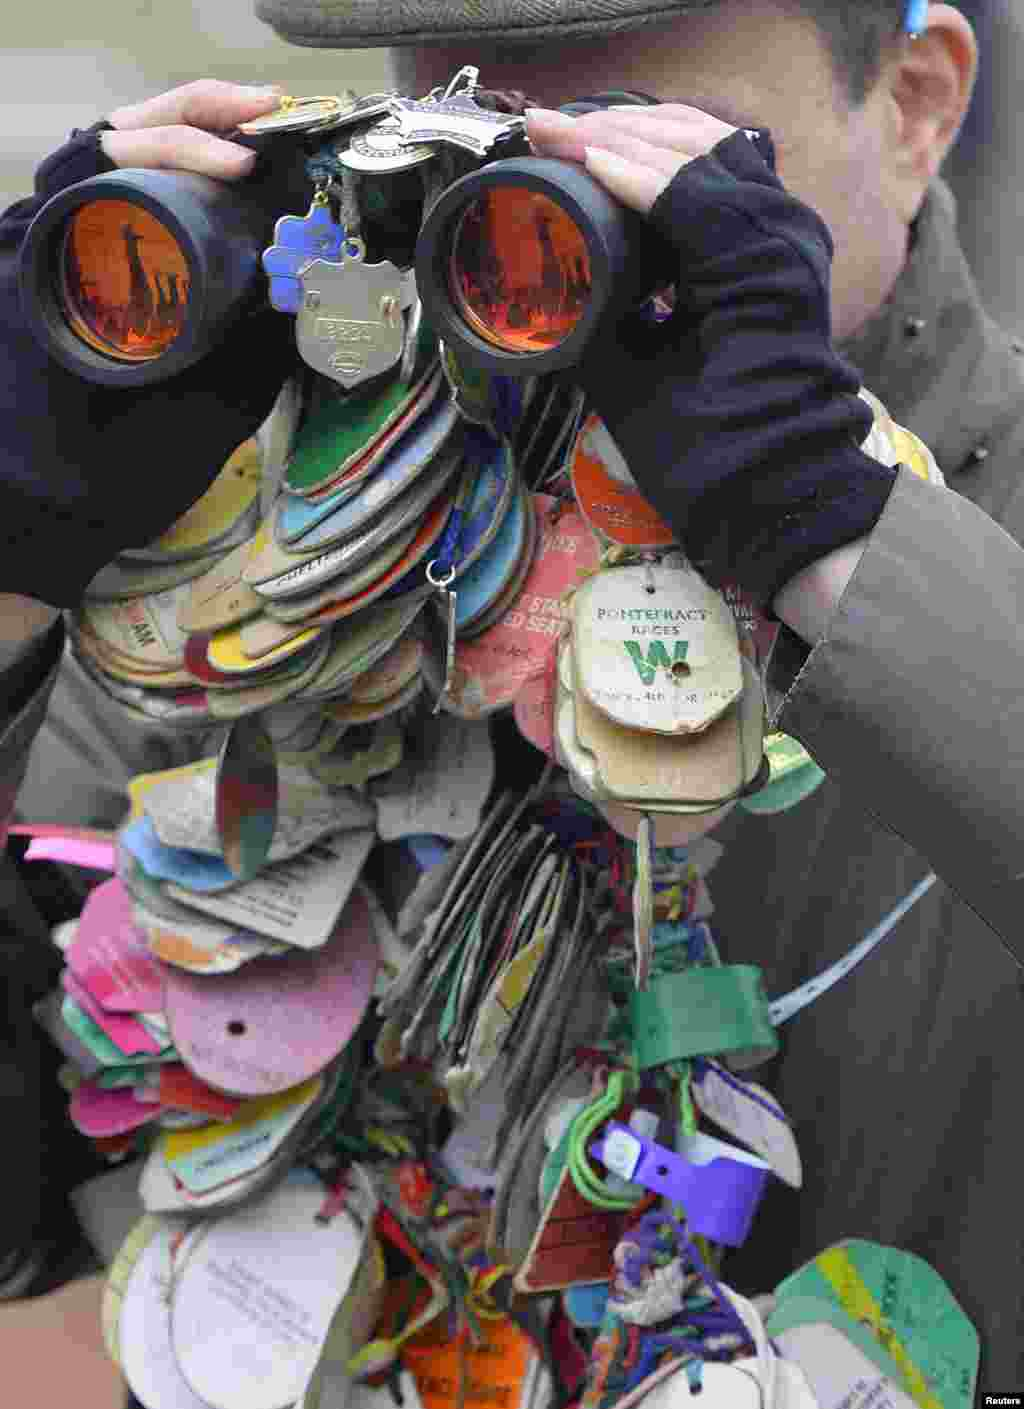 A racegoer looks through his binoculars covered with race passes at the Cheltenham Festival horse racing meet in Gloucestershire, western England. The four-day Cheltenham Festival is a highlight of the annual jump racing calendar.